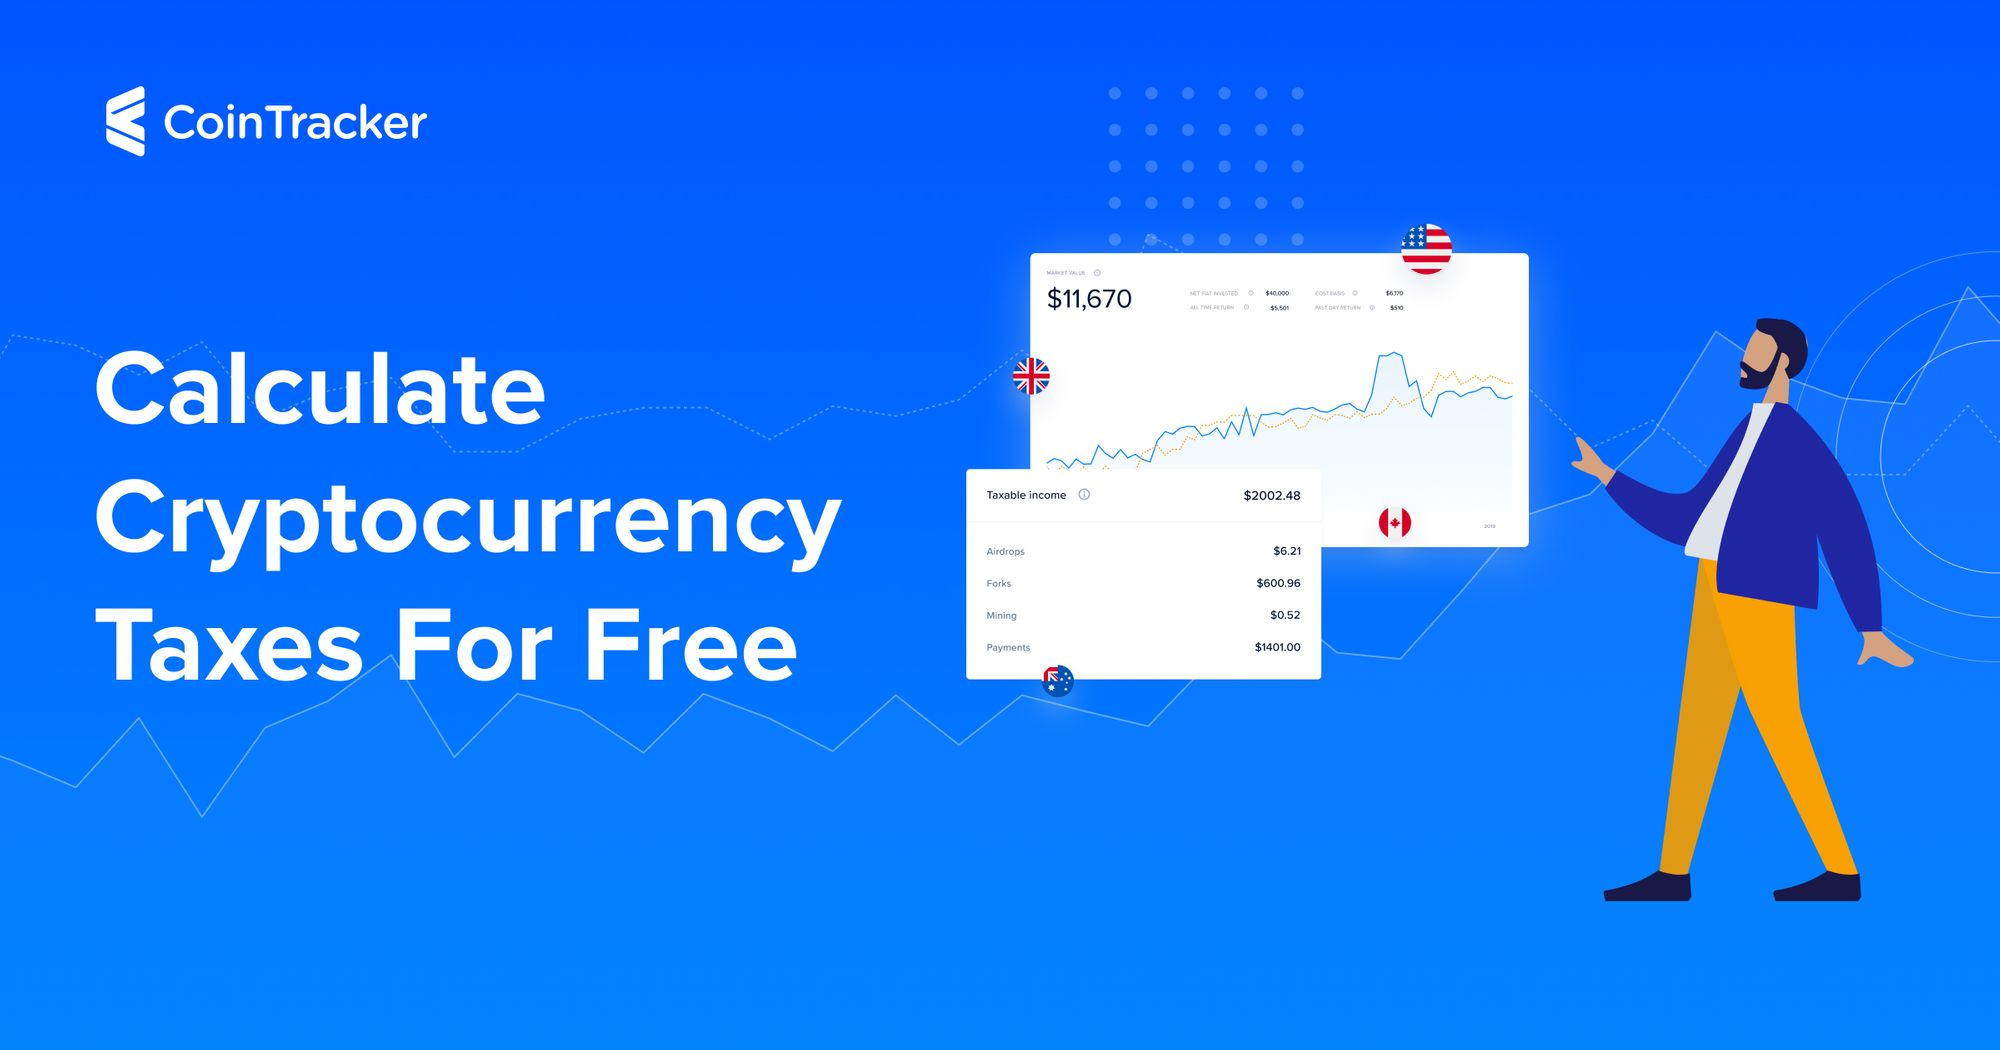 Calculating Crypto Taxes for Free